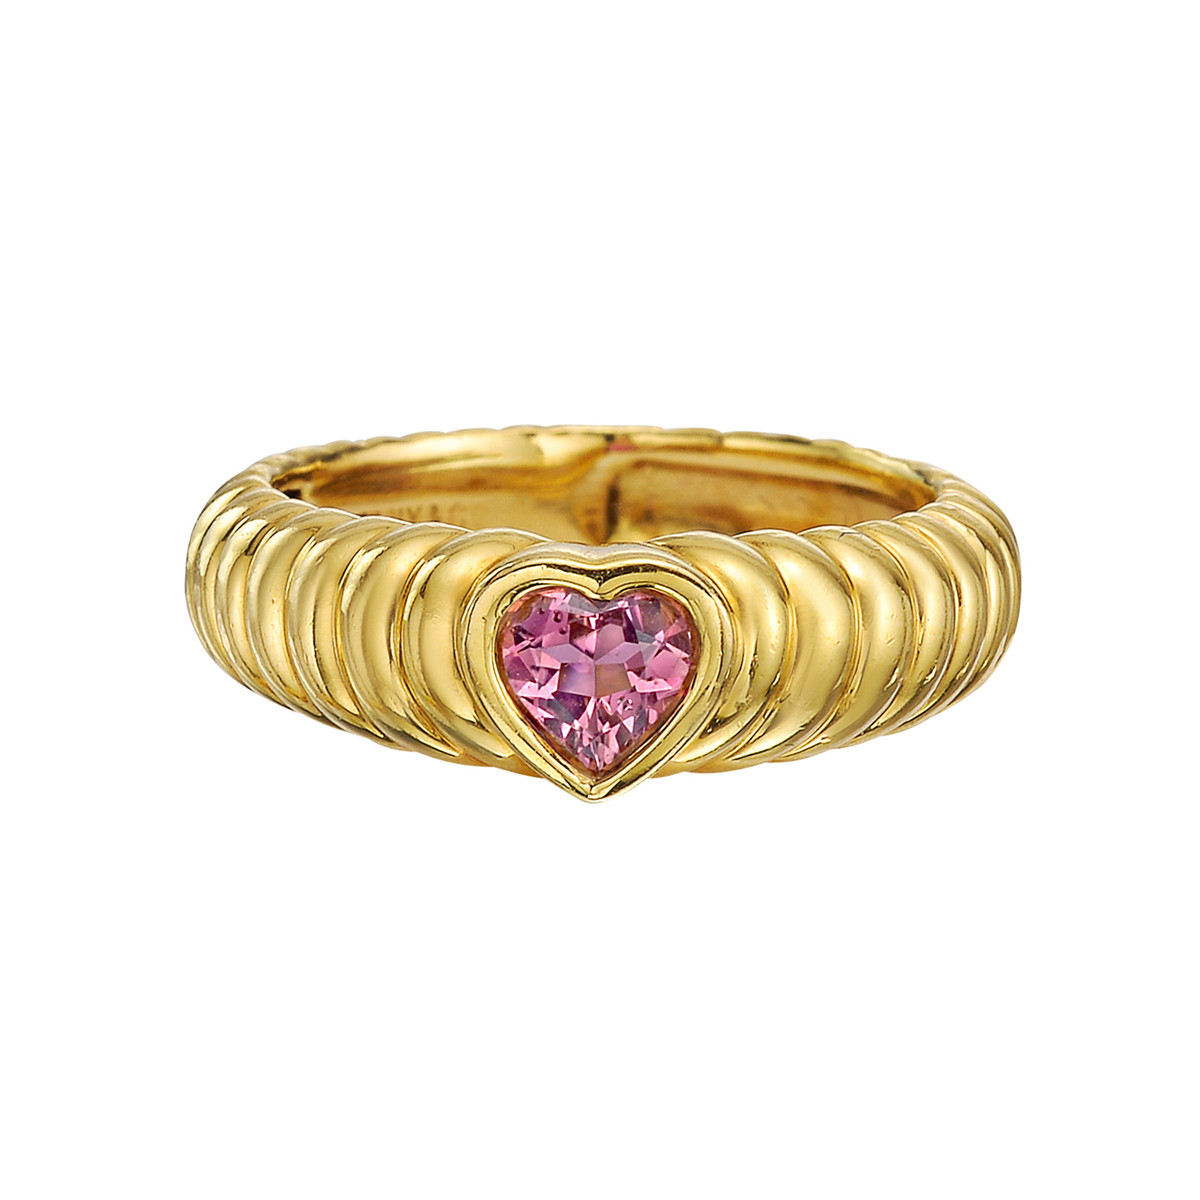 18k Yellow Gold & Pink Sapphire Heart Ring